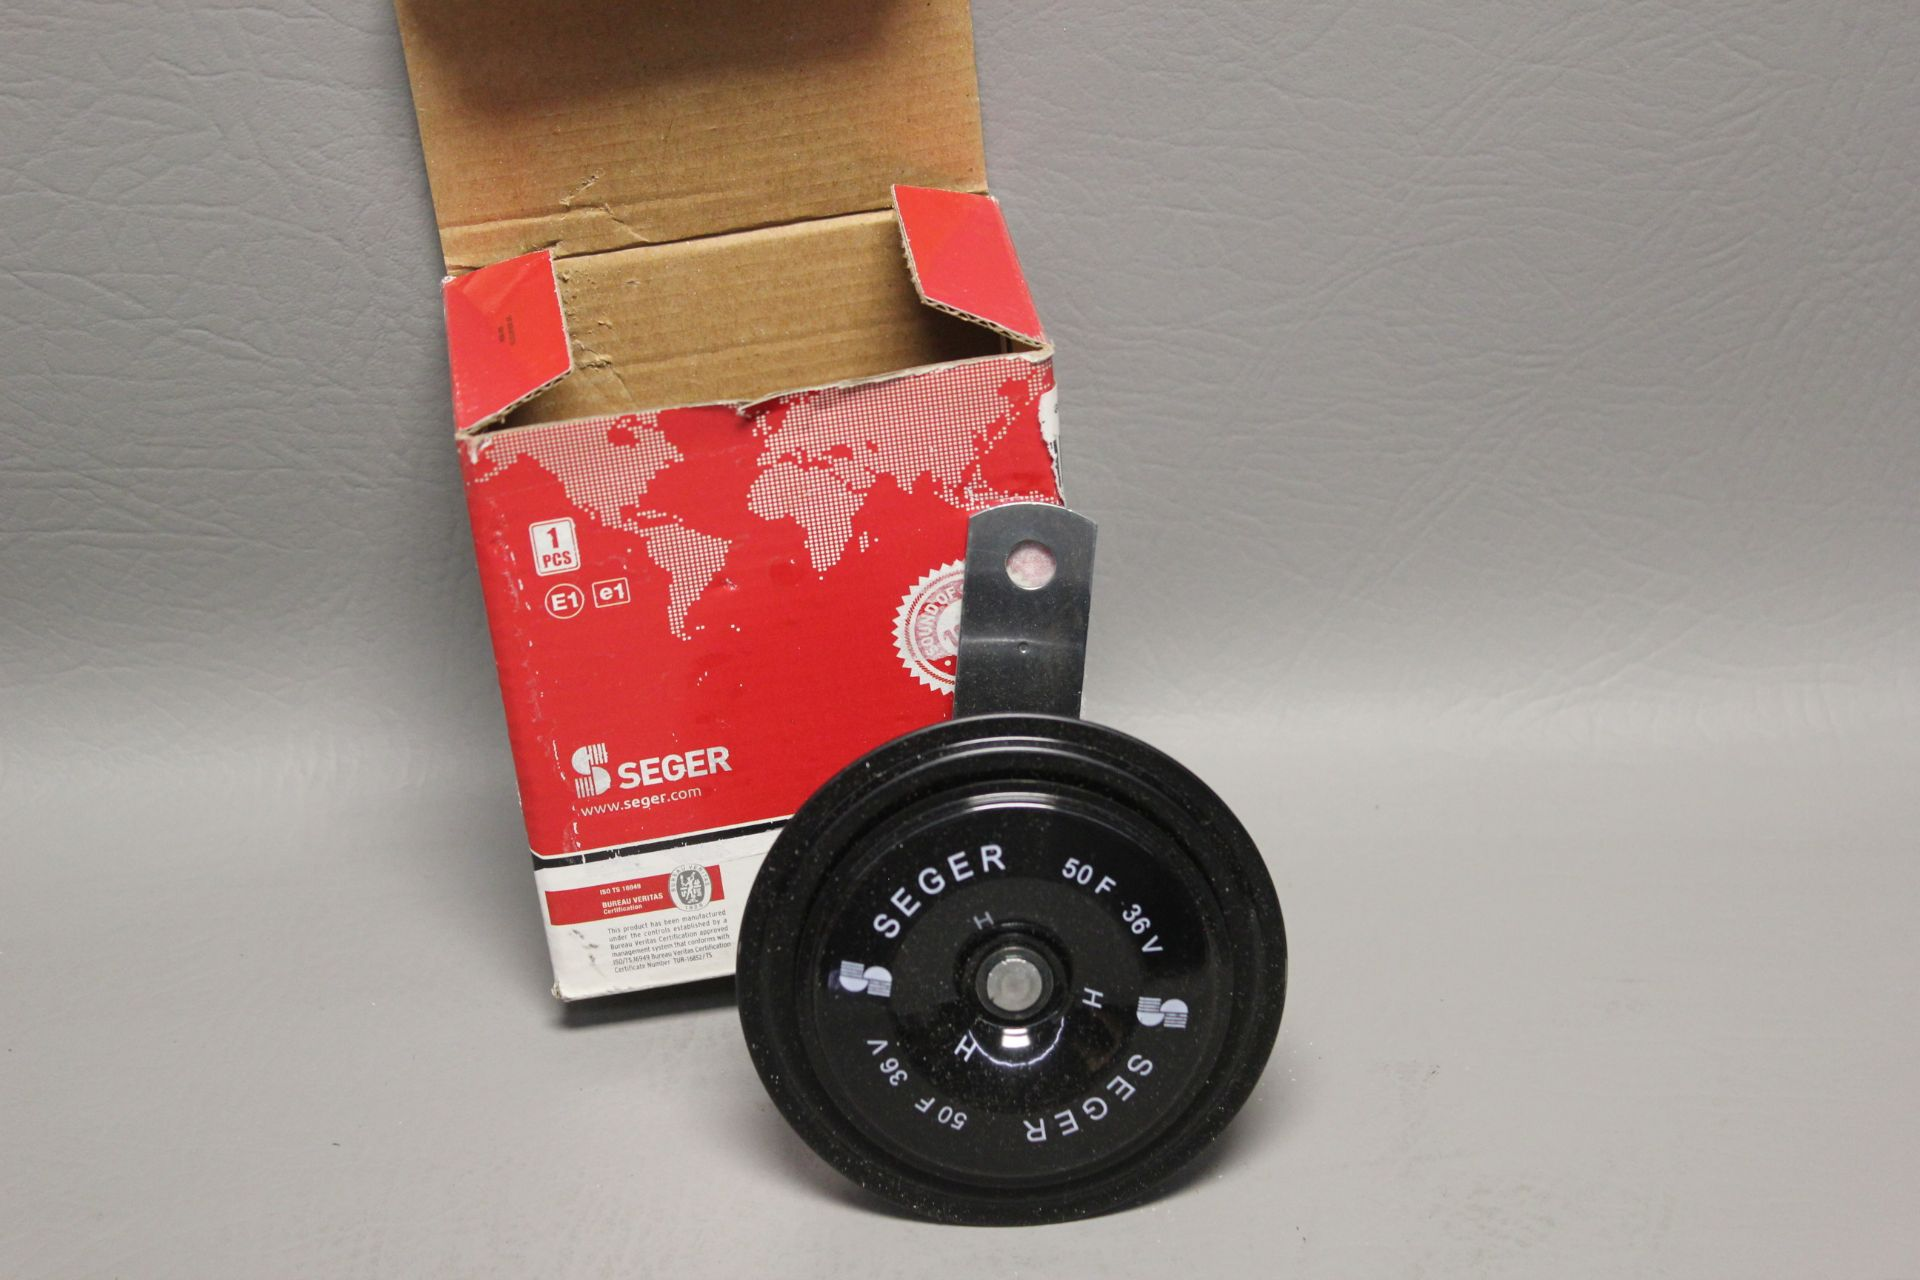 NEW SEGER INDUSTRIAL DISC SAFETY HORN - Image 3 of 3